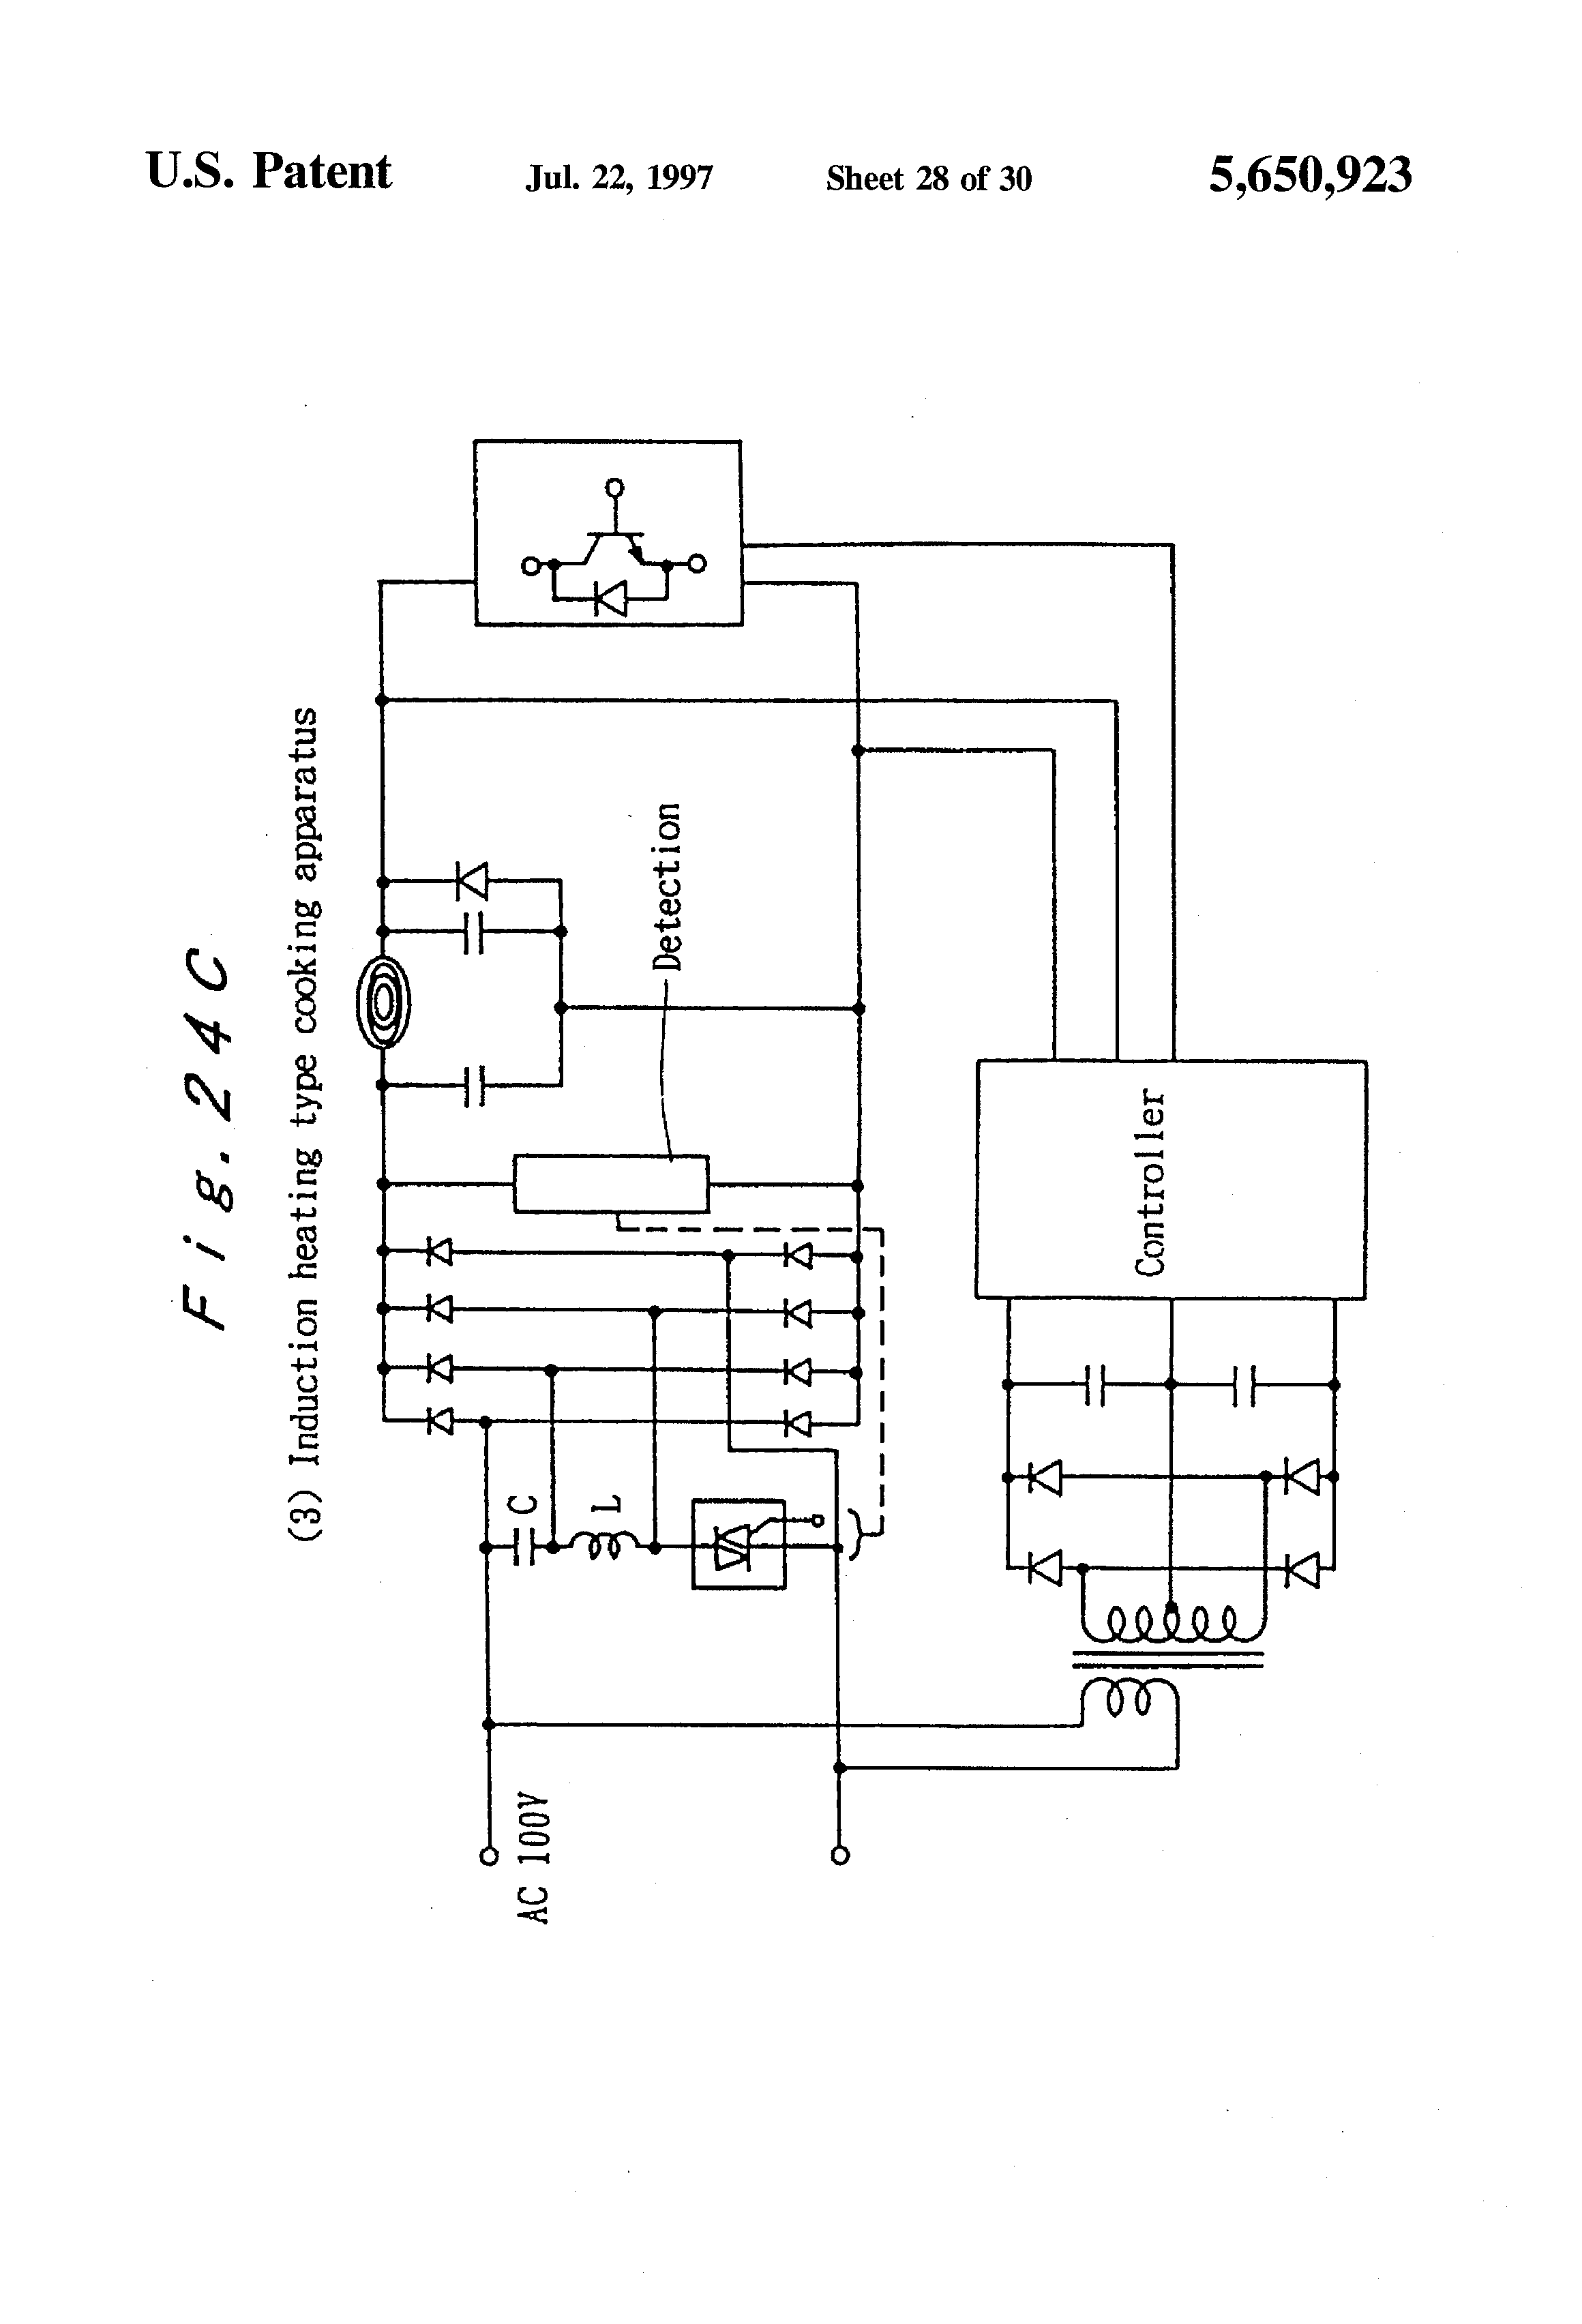 Kbpc5010 Bridge Rectifier Wiring Diagram Auto Electrical Turnflex Yankee 730 6 And Engine